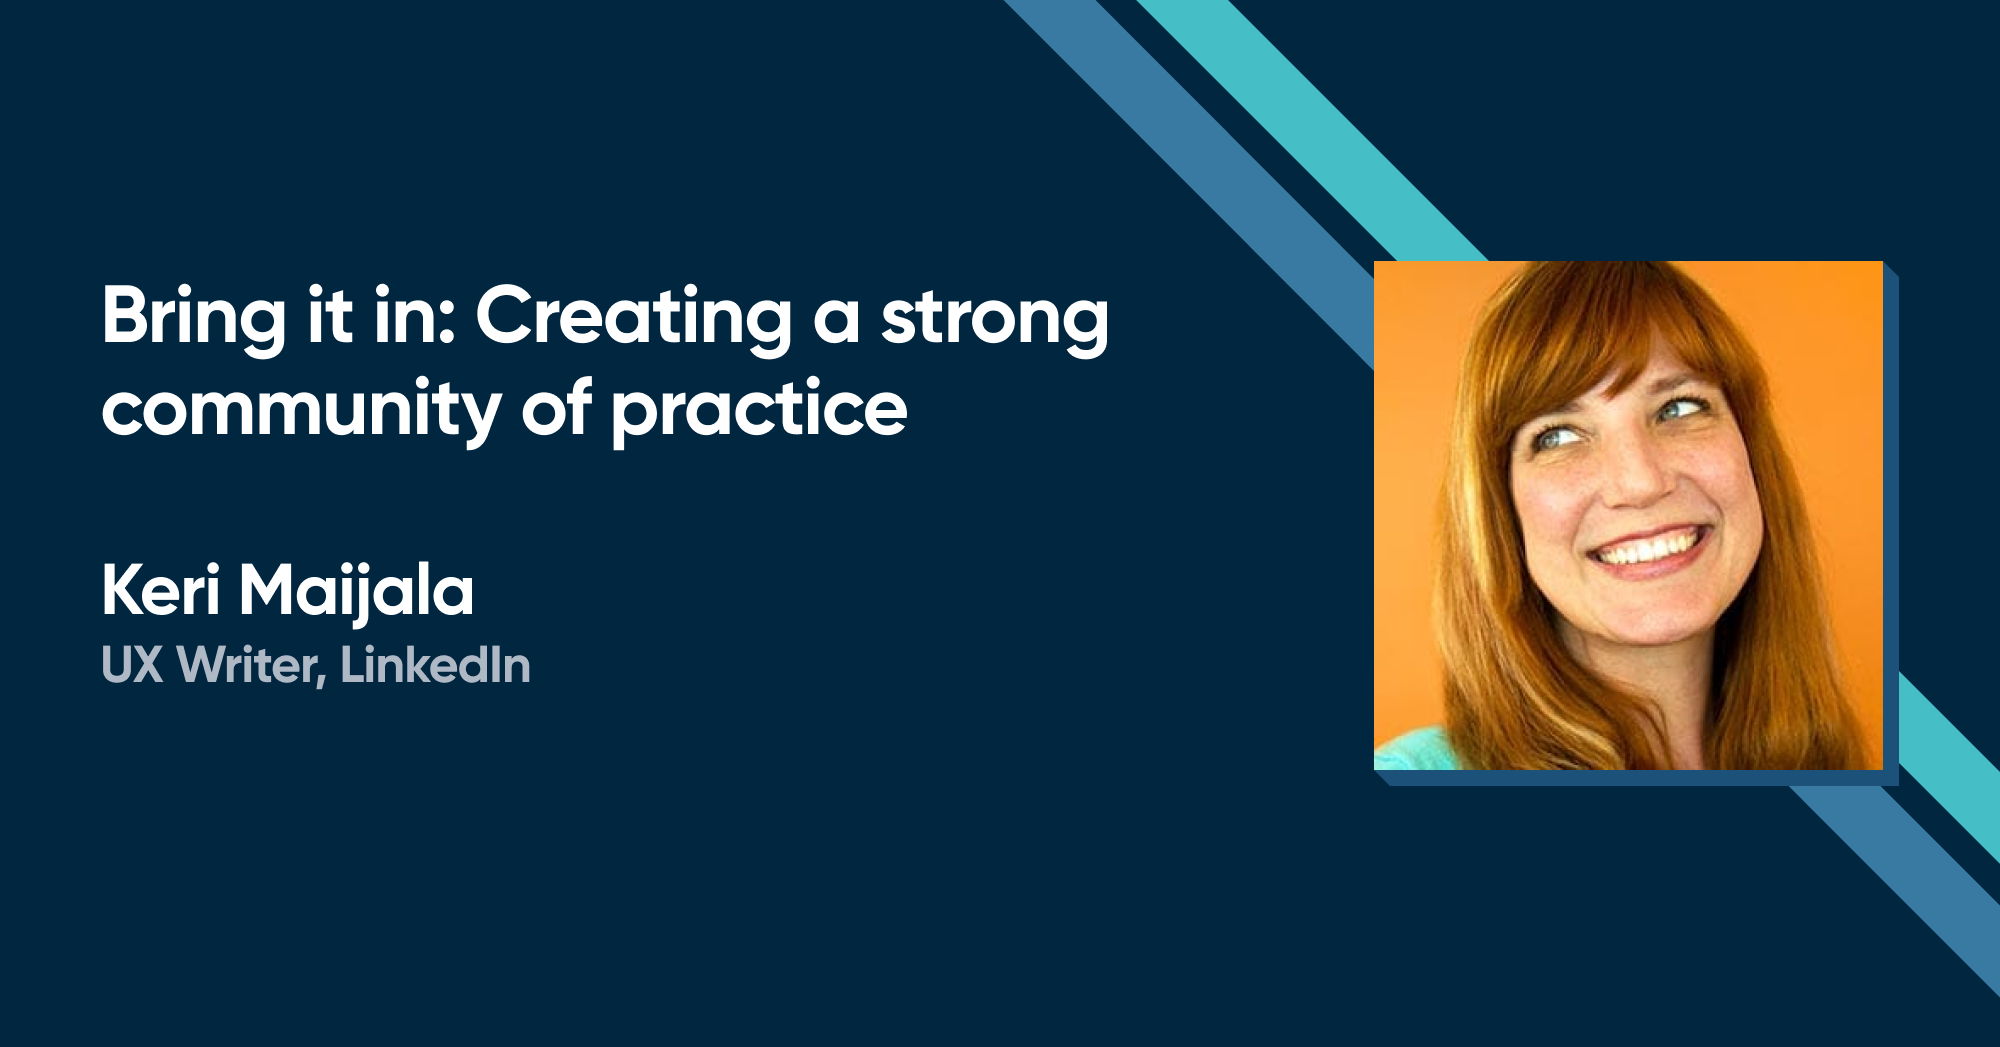 Keri Maijala - Bring it in: Creating a strong community of practice